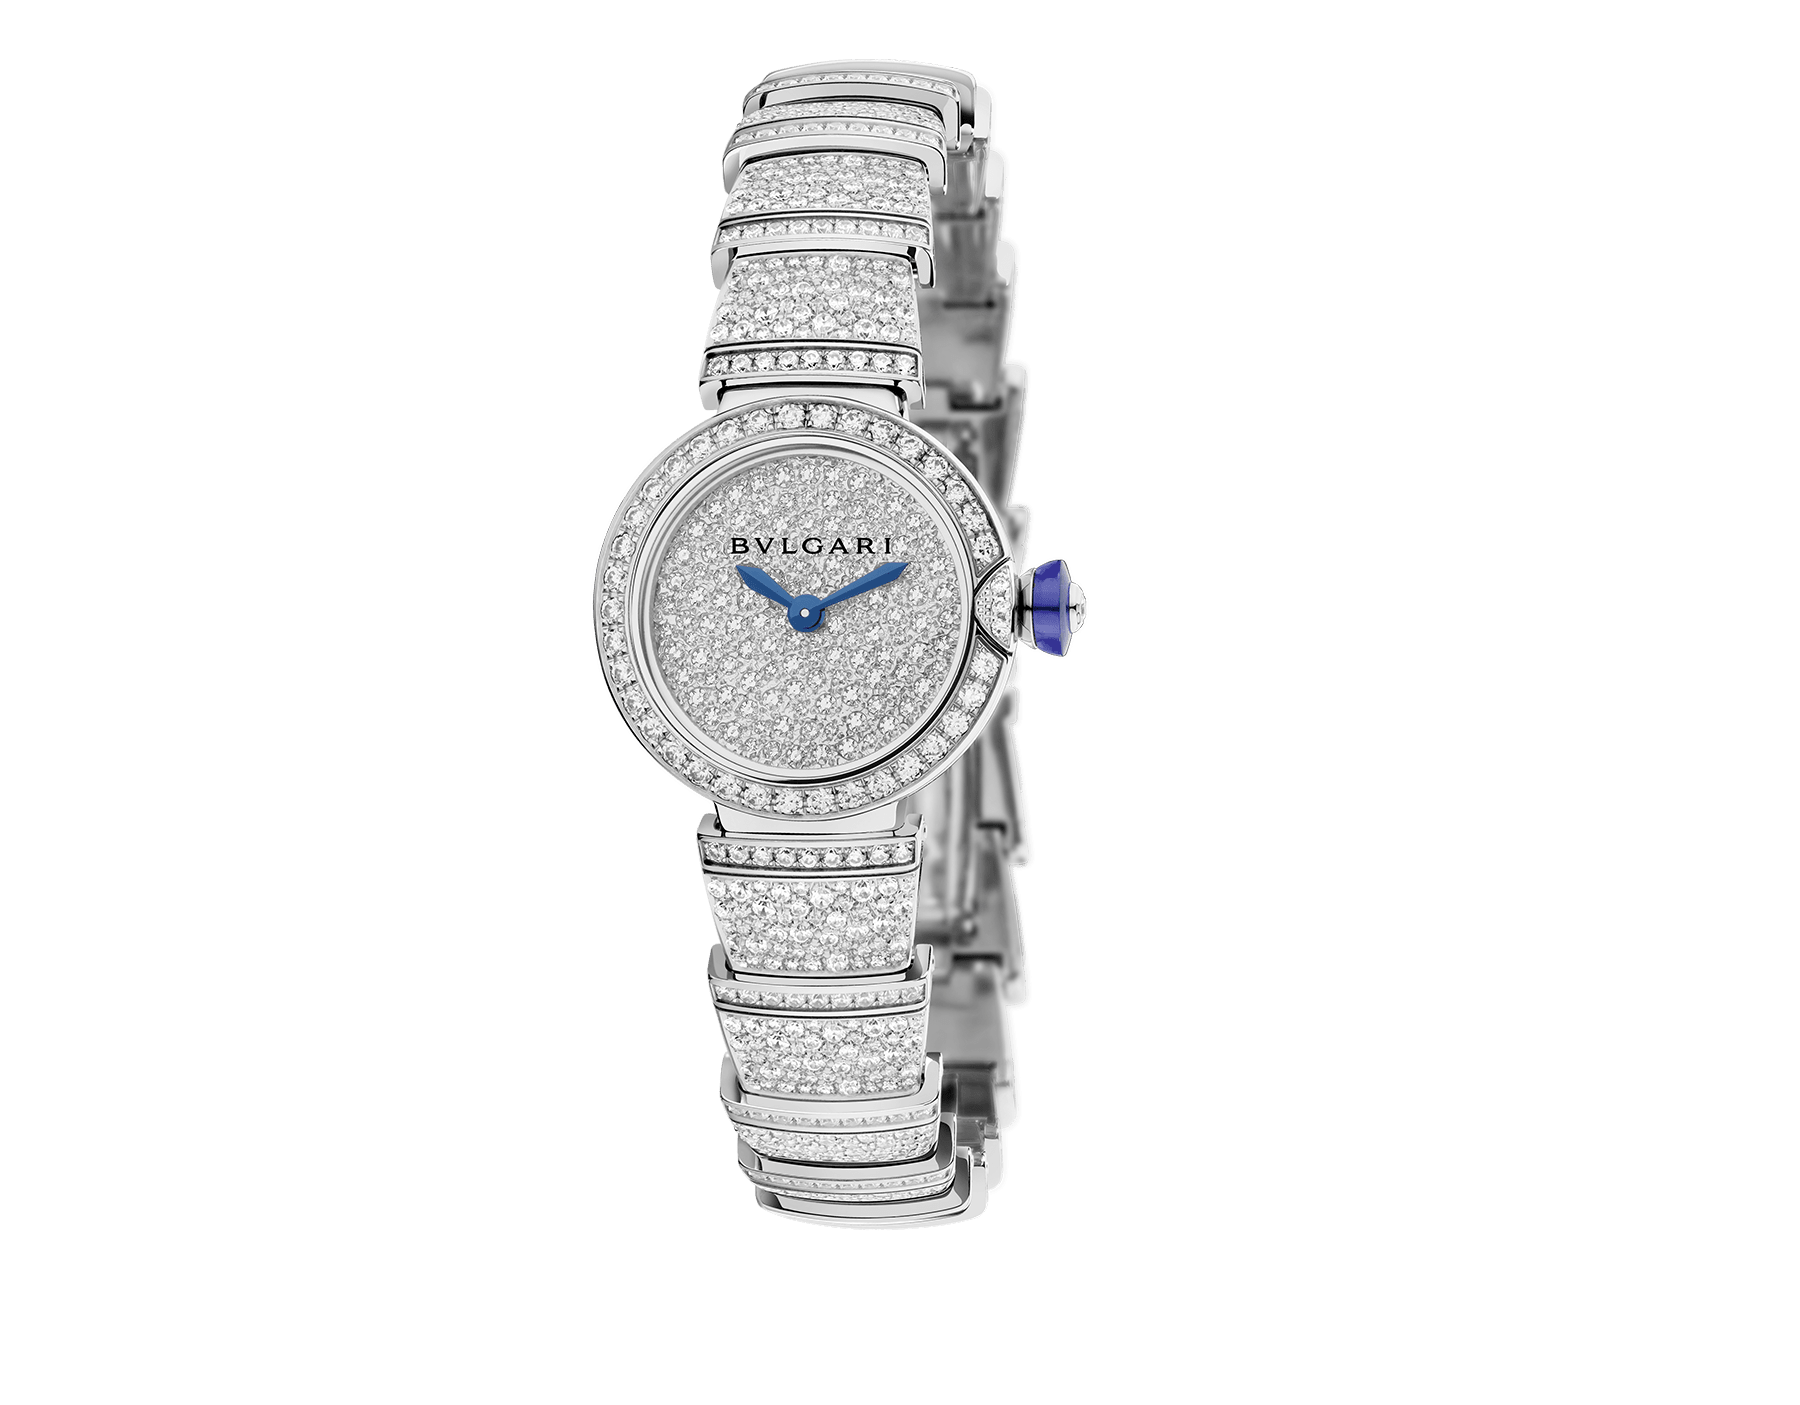 Piccola Lvcea watch in 18kt white gold case and bracelet, both set with brillant-cut diamonds and full pavé diamond dial. 102574 image 1